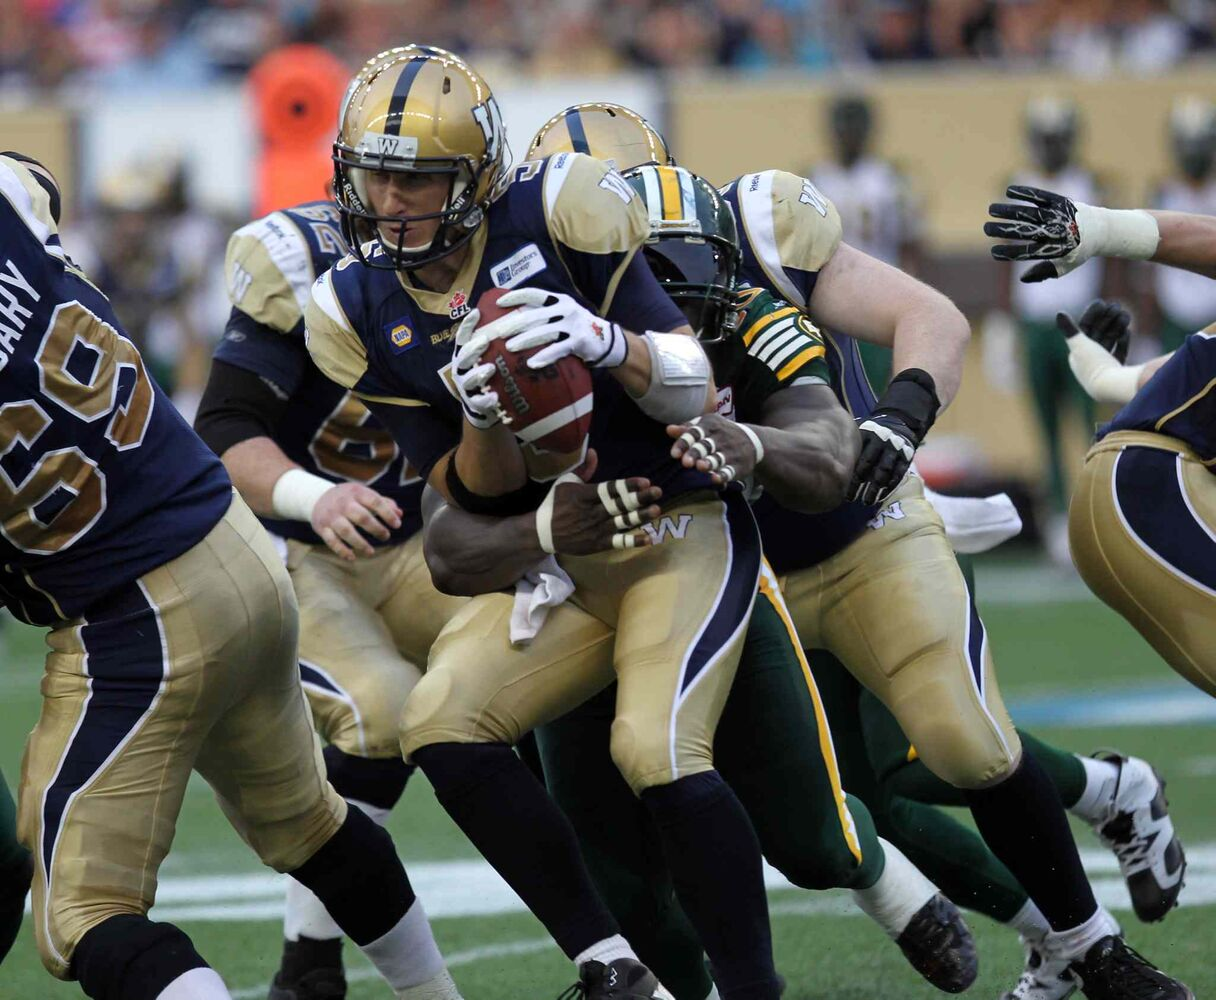 Winnipeg Blue Bombers' quarterback Drew Willy gets wrapped up in the arms of Edmonton Eskimos' #90 Almondo Sewell in the second quarter of Thursday's game.